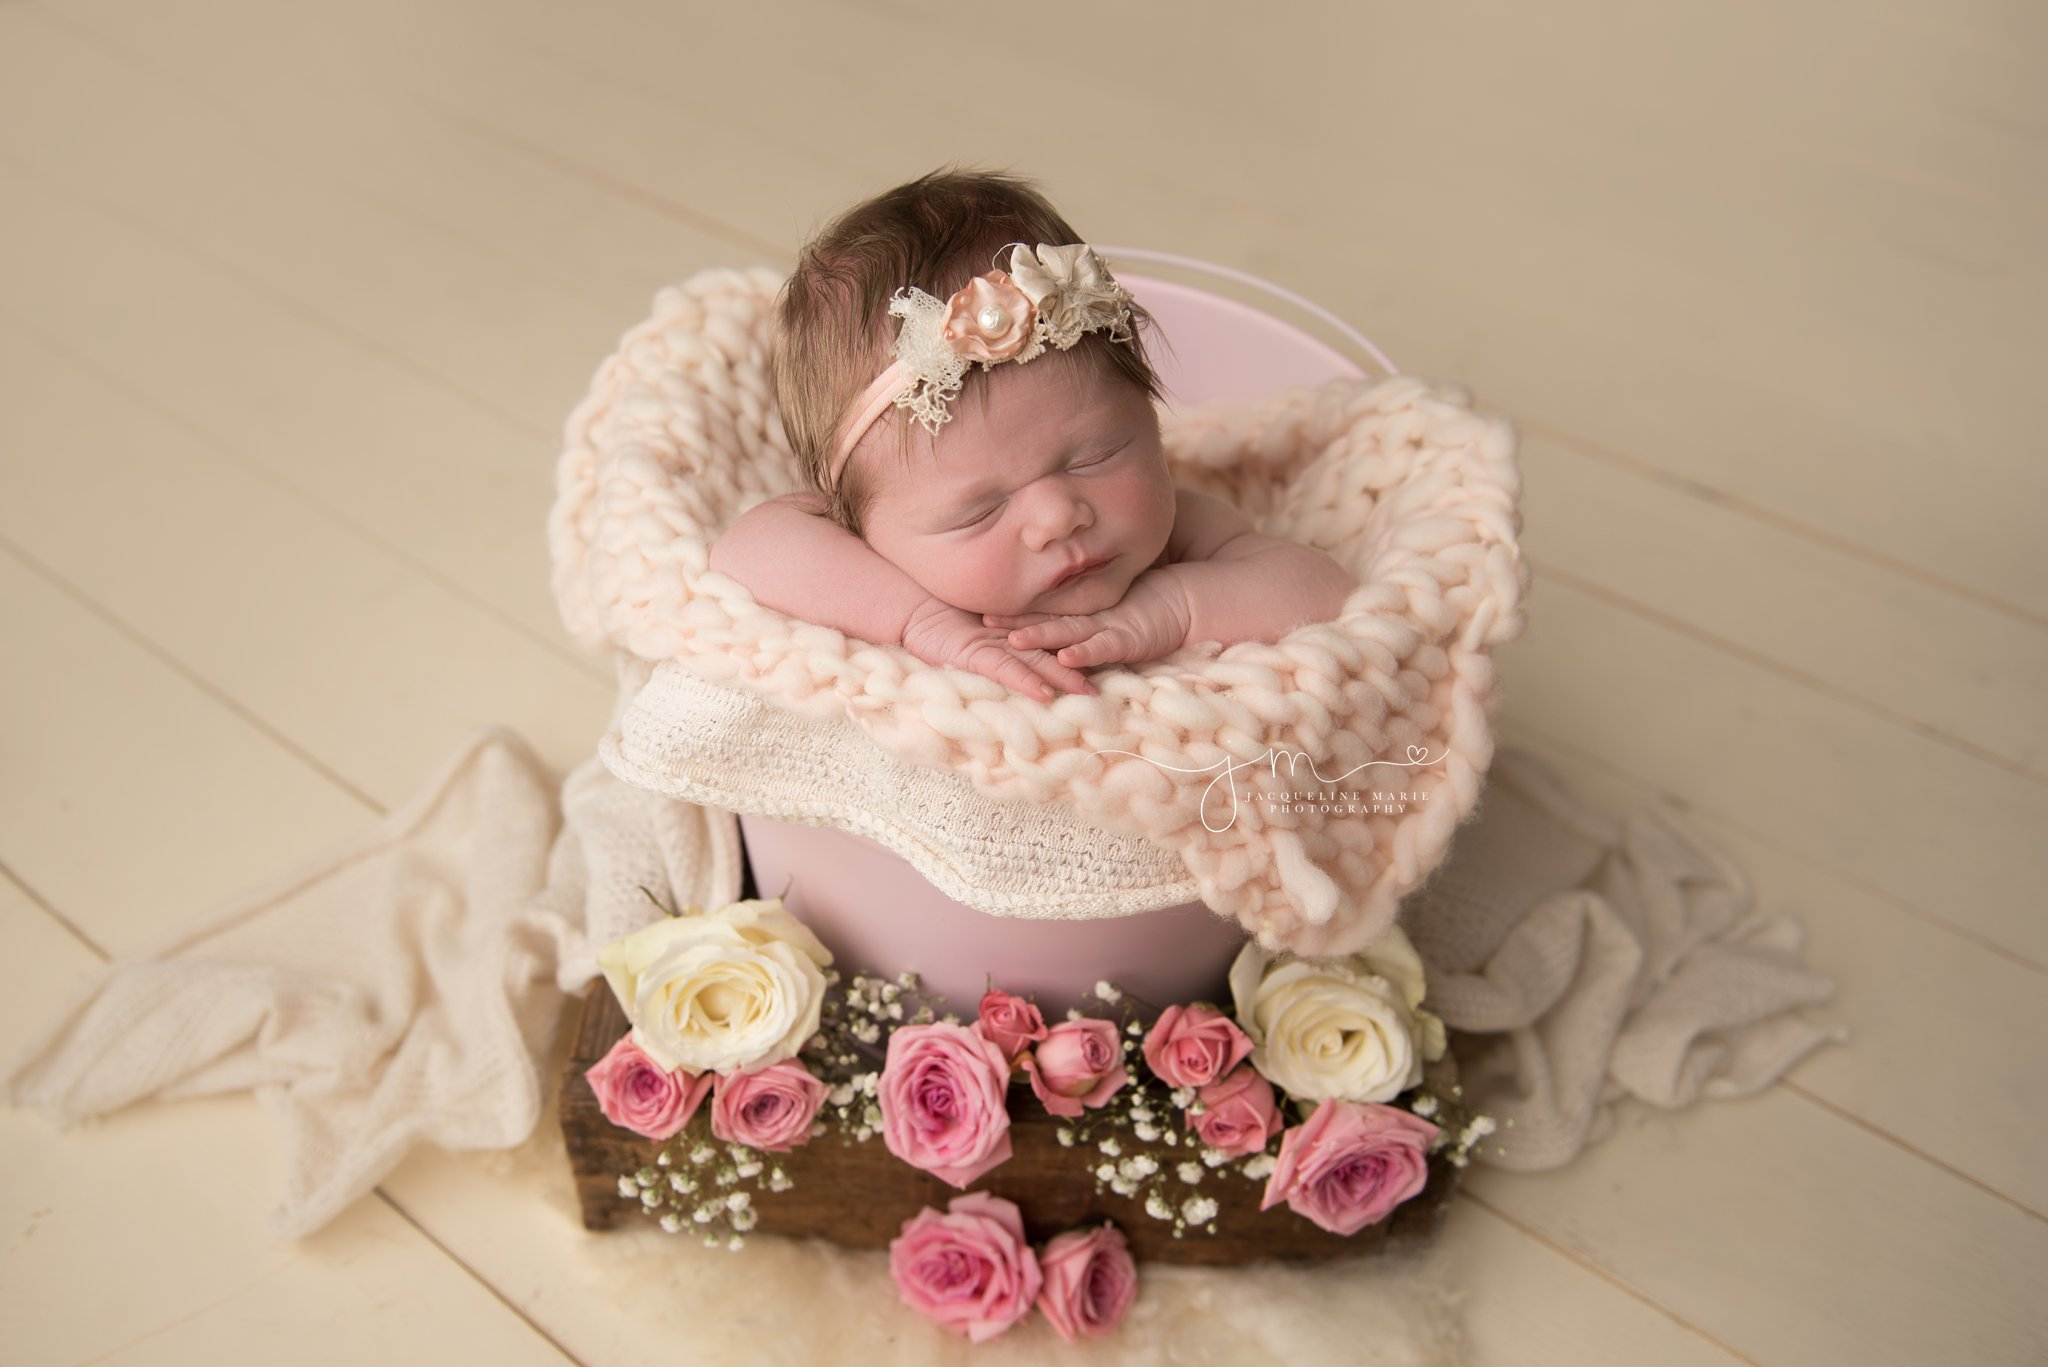 1 week old newborn baby girl is sleeping in pink bucket surrounded with pink and cream roses in columbus ohio newborn photography studio